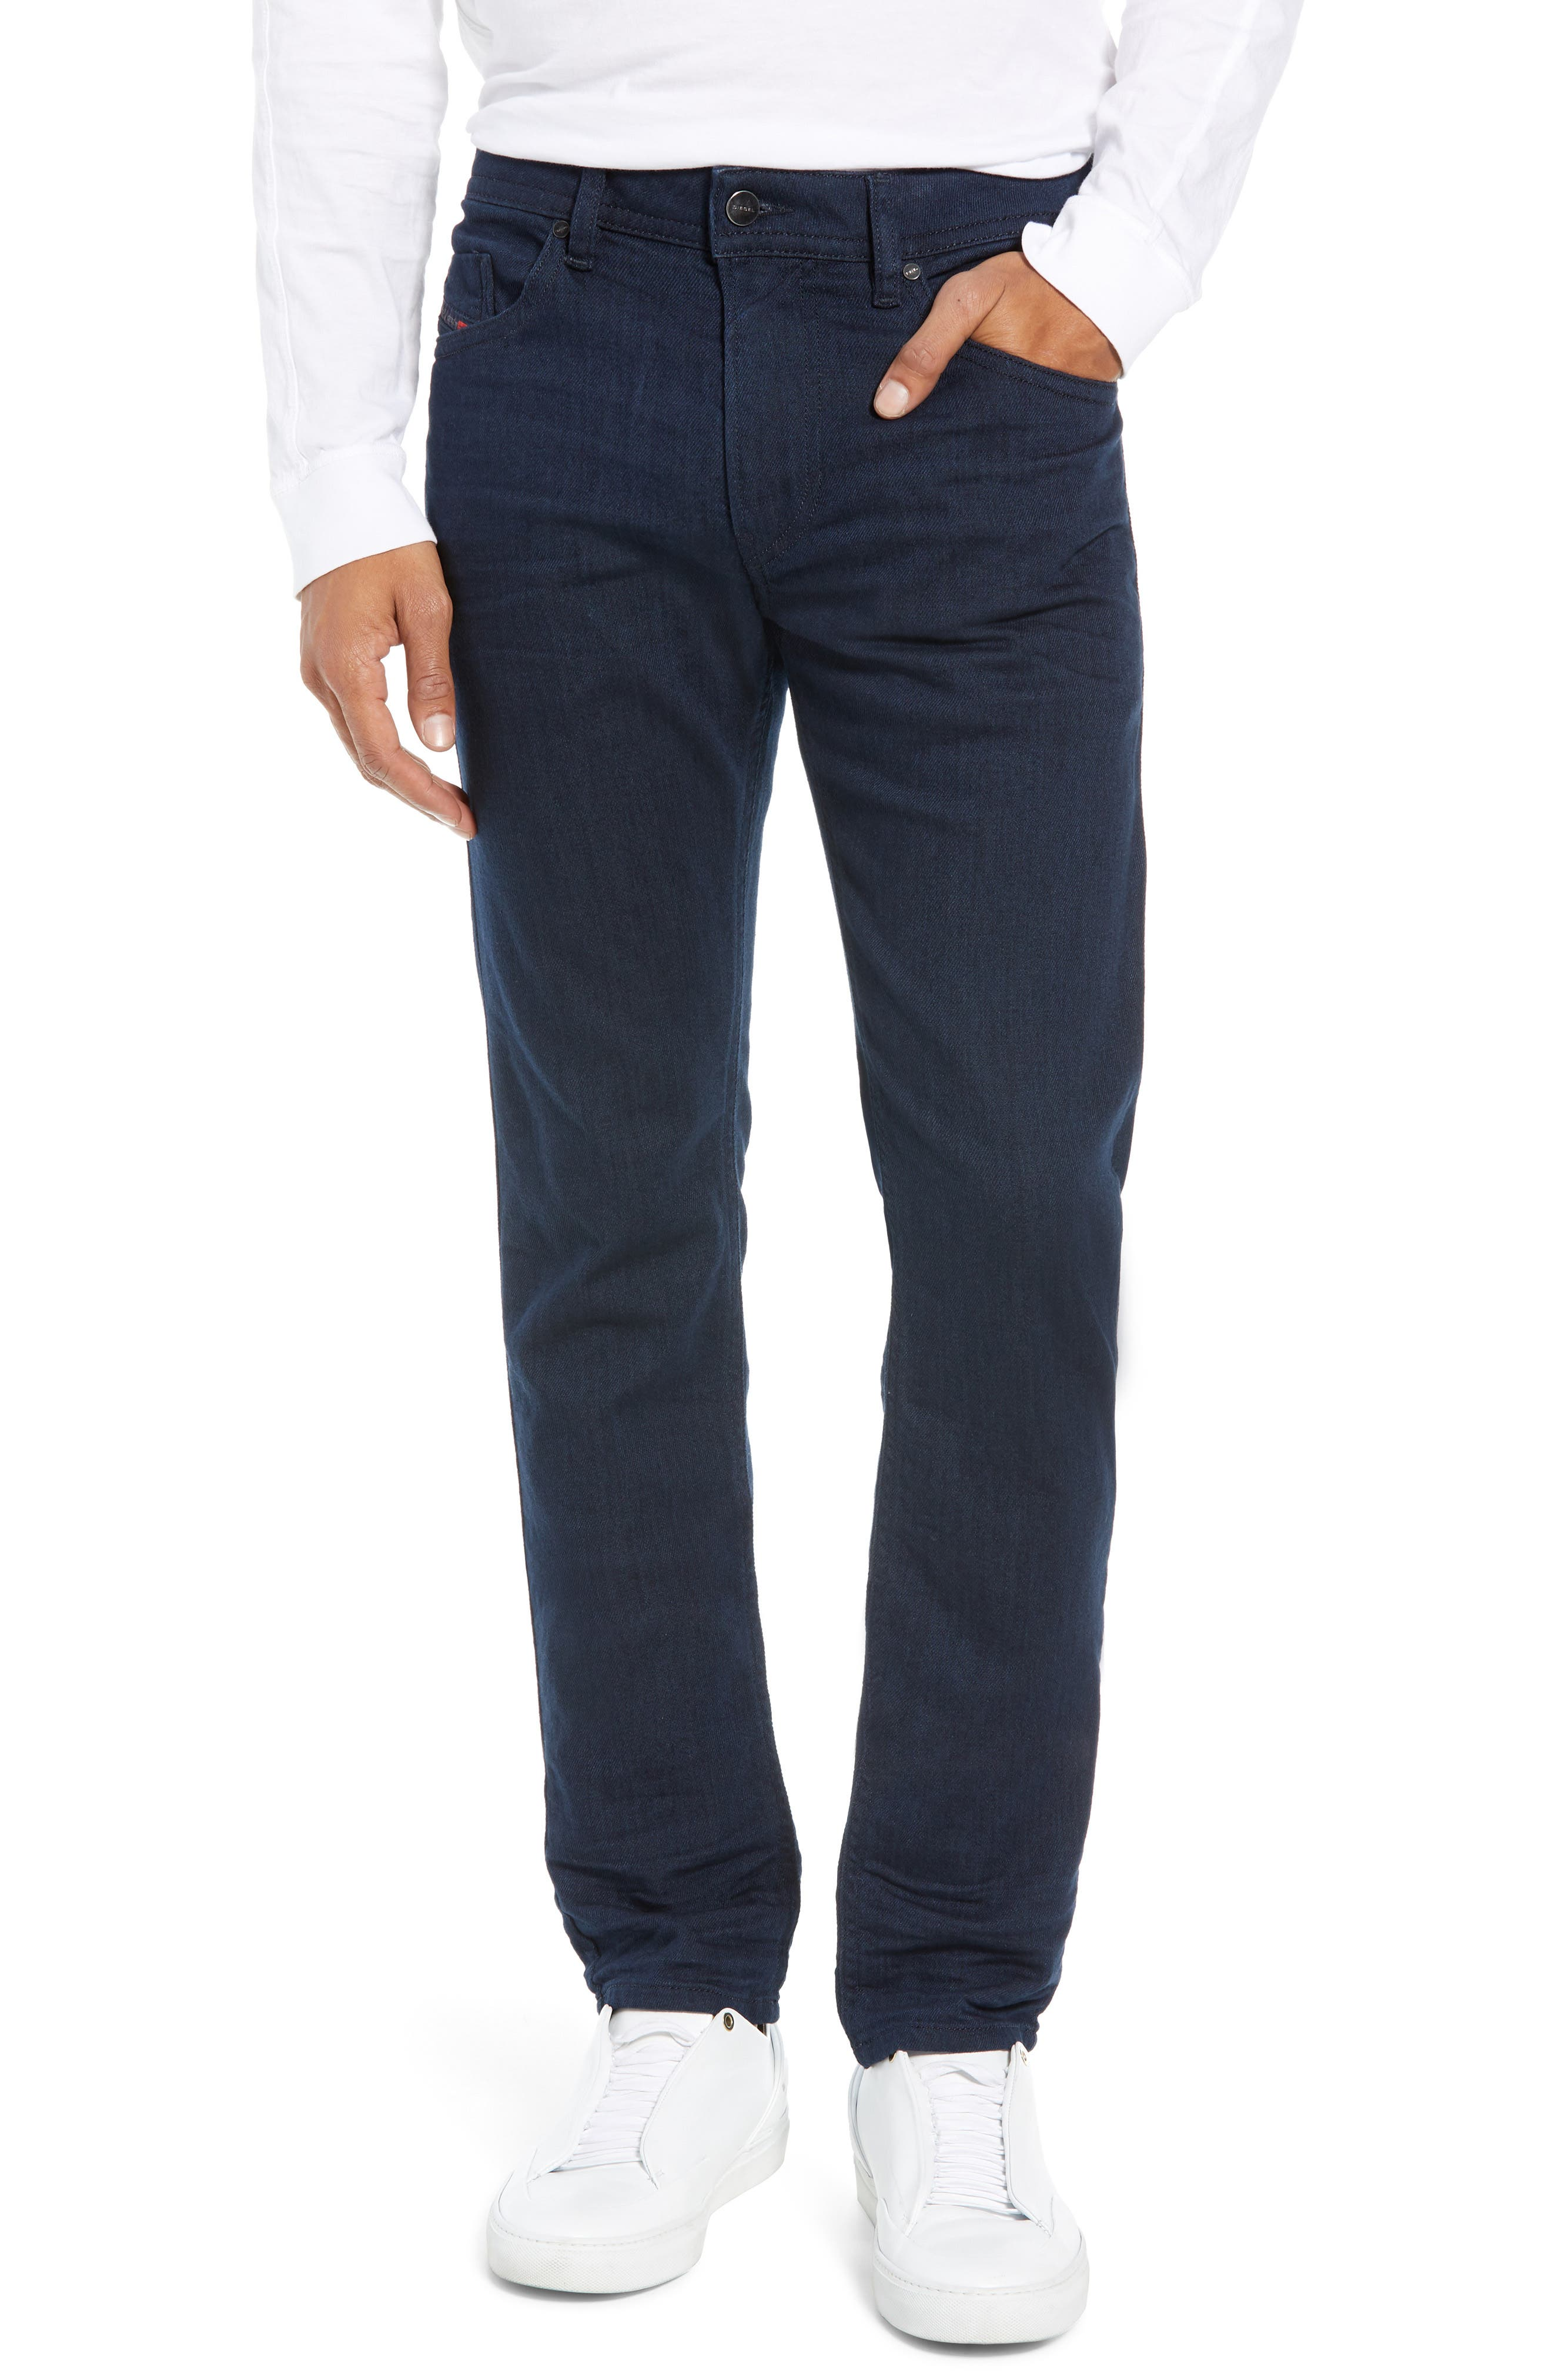 Thommer Skinny Fit Jeans,                             Main thumbnail 1, color,                             400